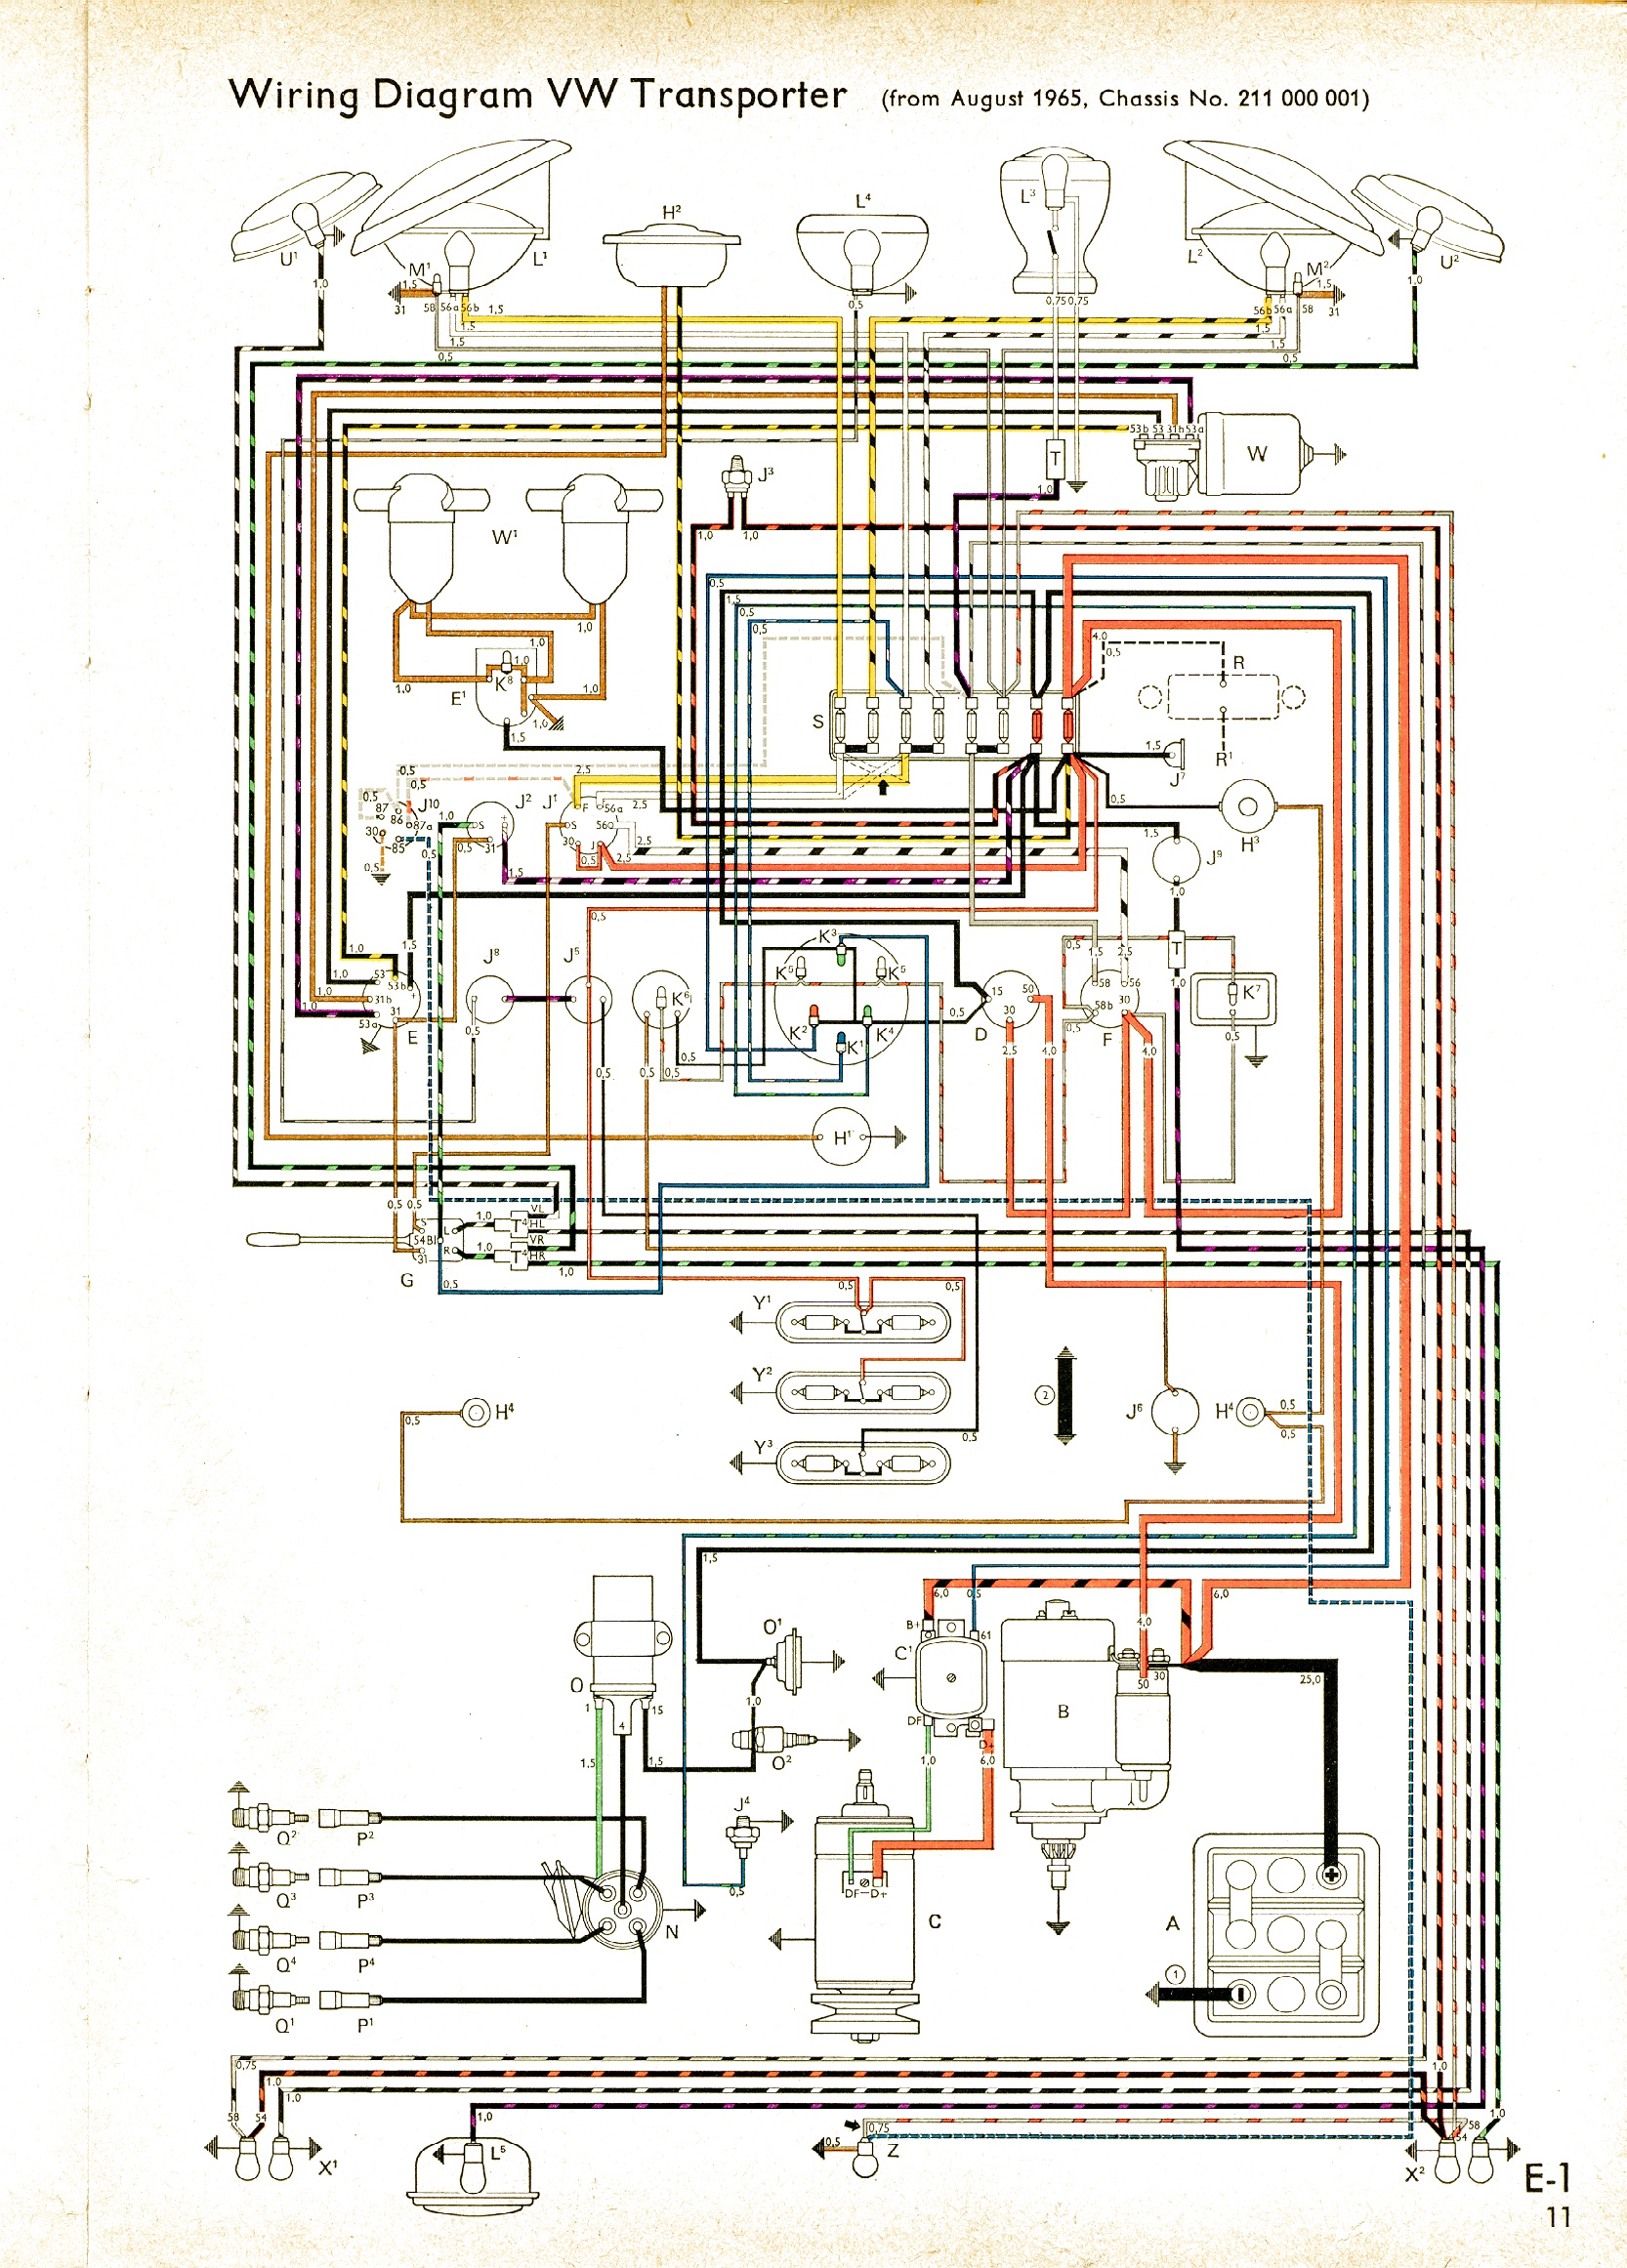 Vintagebus Com Vw Bus (and Other) Wiring Diagrams VW Super Beetle Wiring  Diagram 65 Vw Wiring Diagram